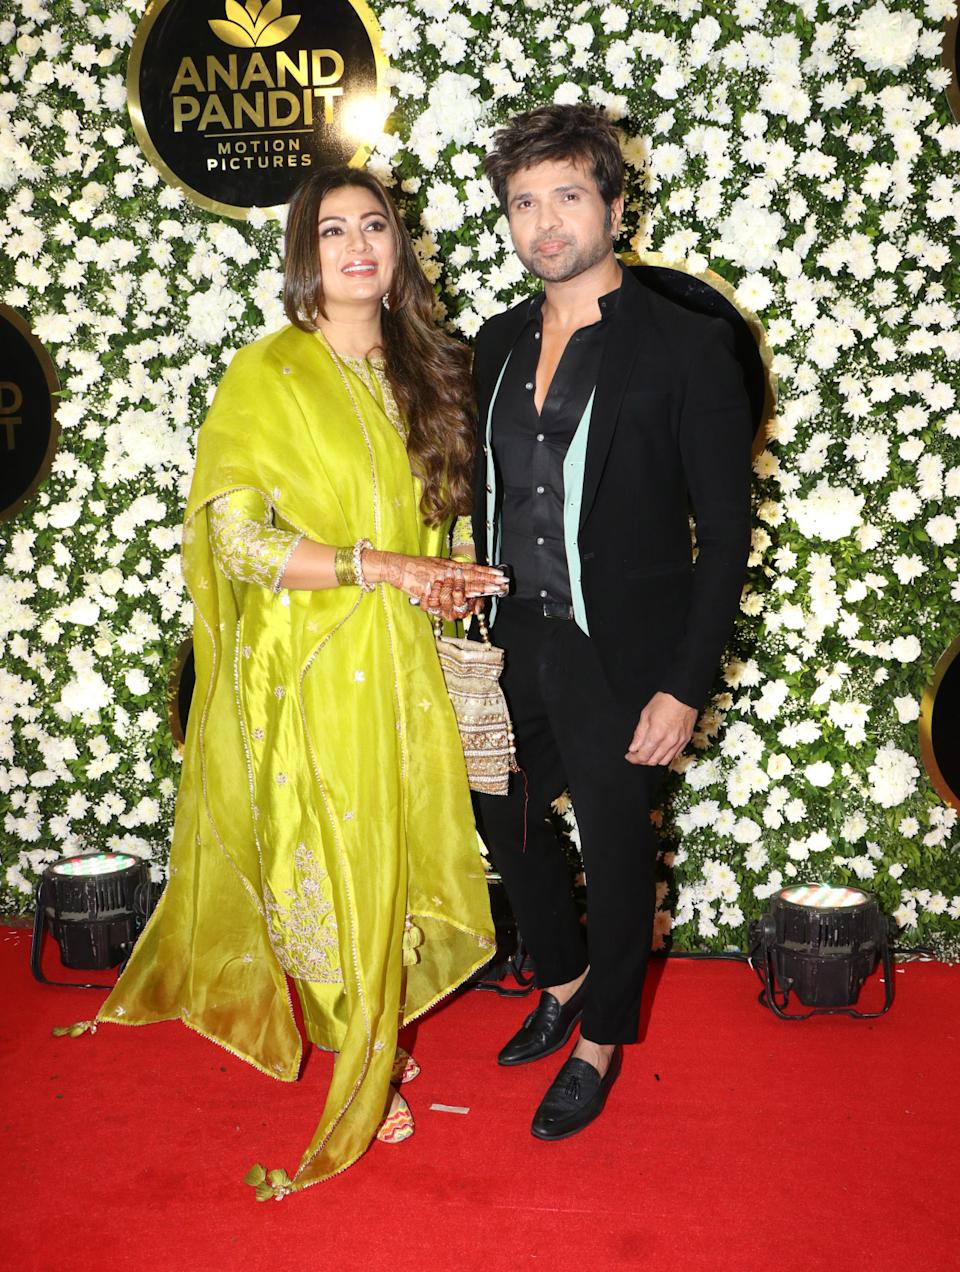 Himesh Reshamiya accompanied with his wife posing for the Diwali party.